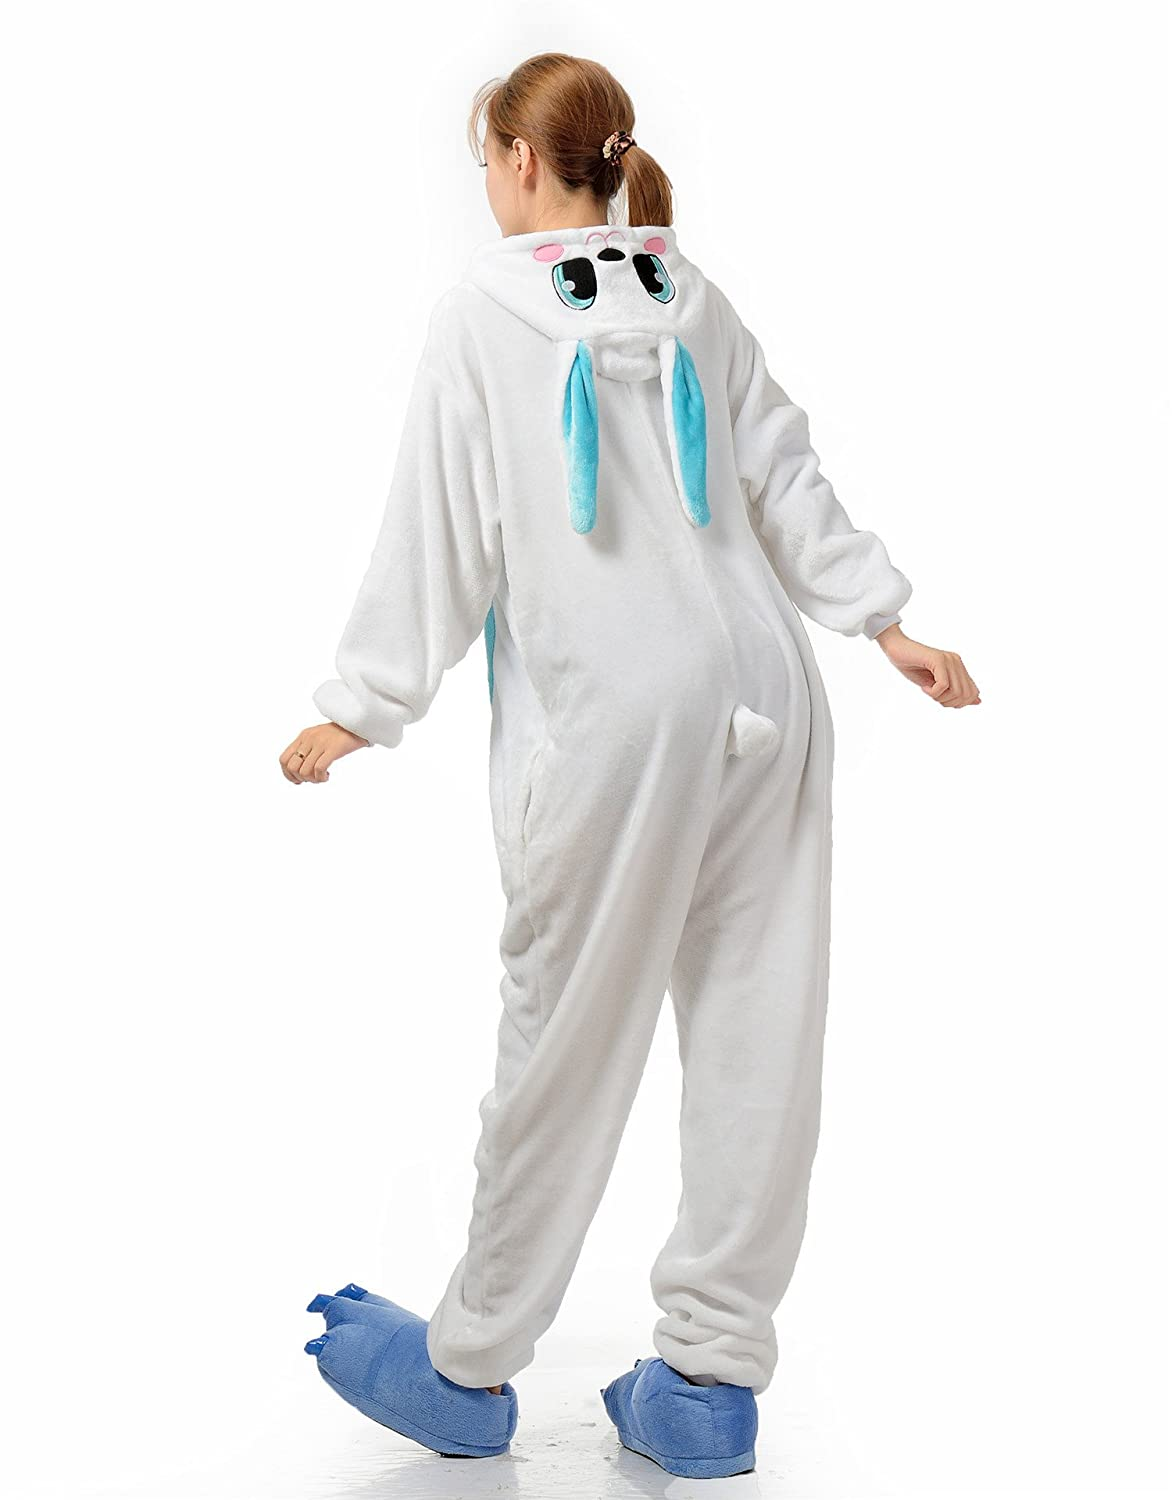 Amazon.com: FashionFits Unisex Jumpsuit Bunny Suit One Piece Pyjama Rabbit Homewear Pajama: Clothing